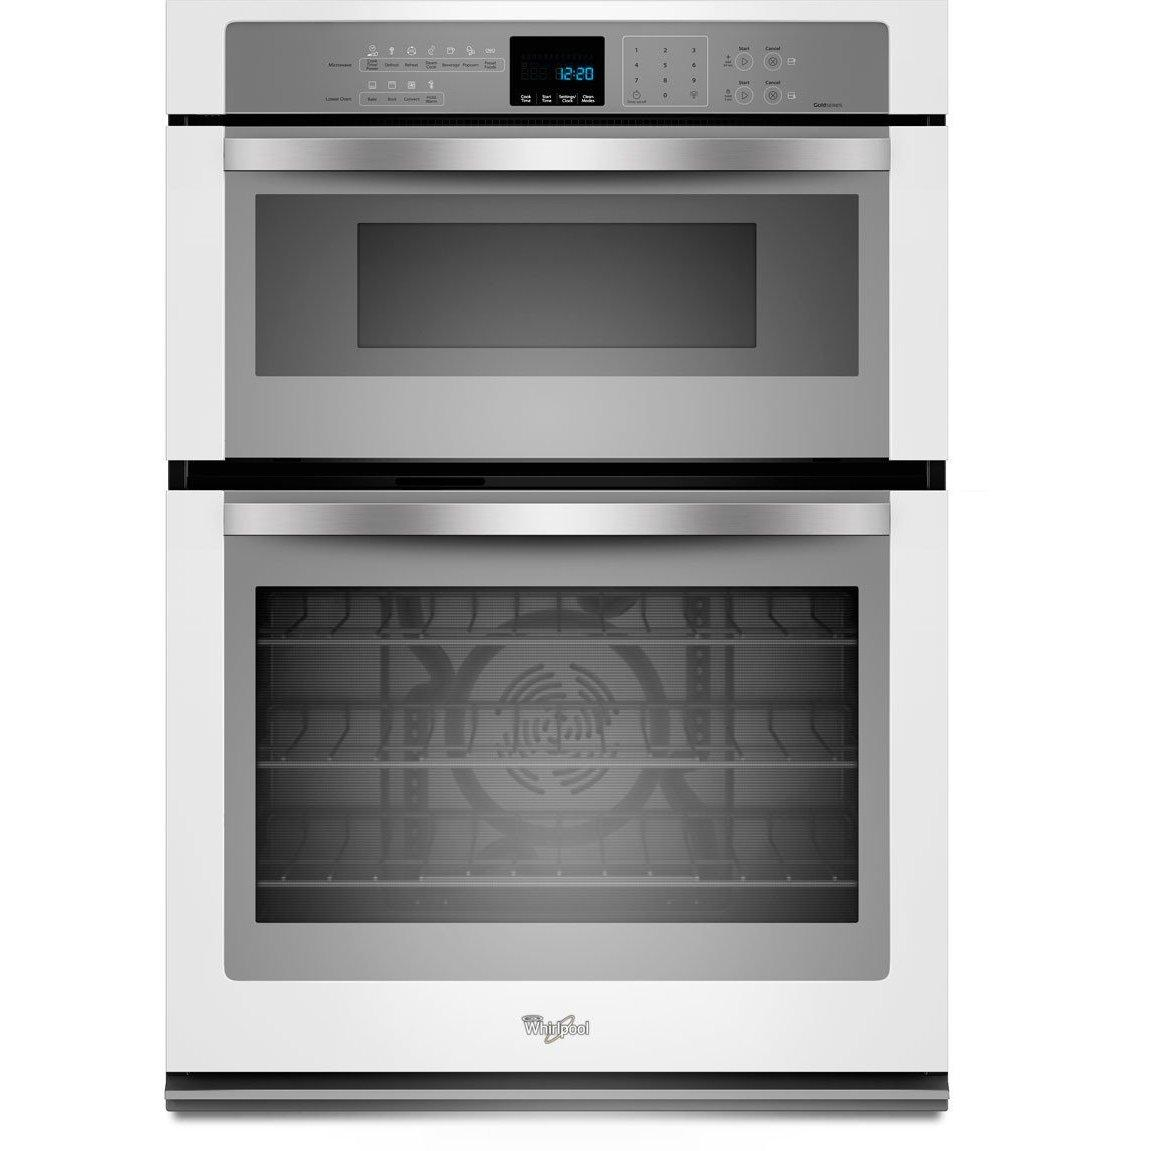 Woc95ec0as Whirlpool Woc95ec0as Double Wall Ovens